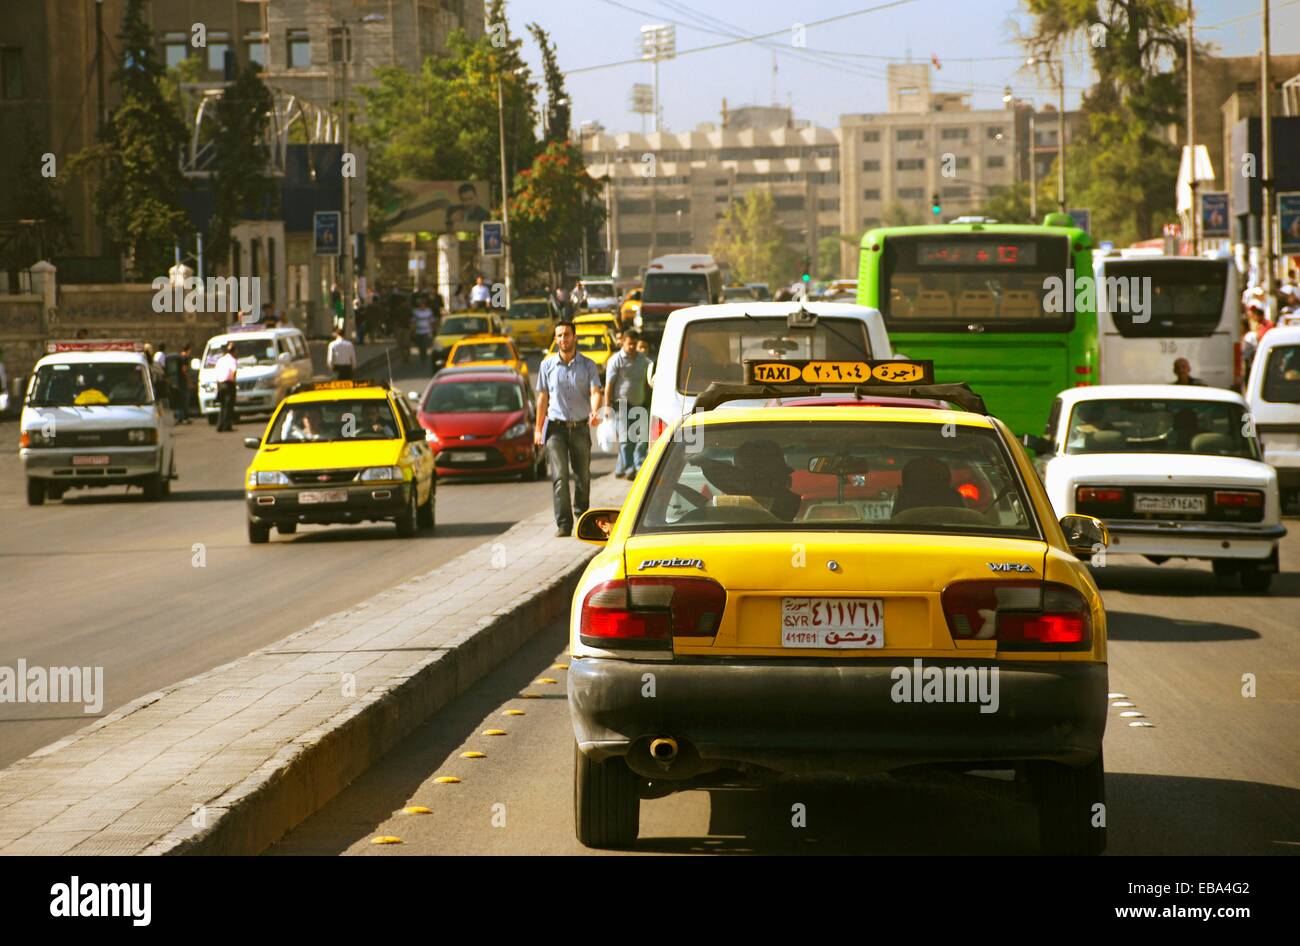 Heavy traffic in the center of Damascus, Syria - Stock Image